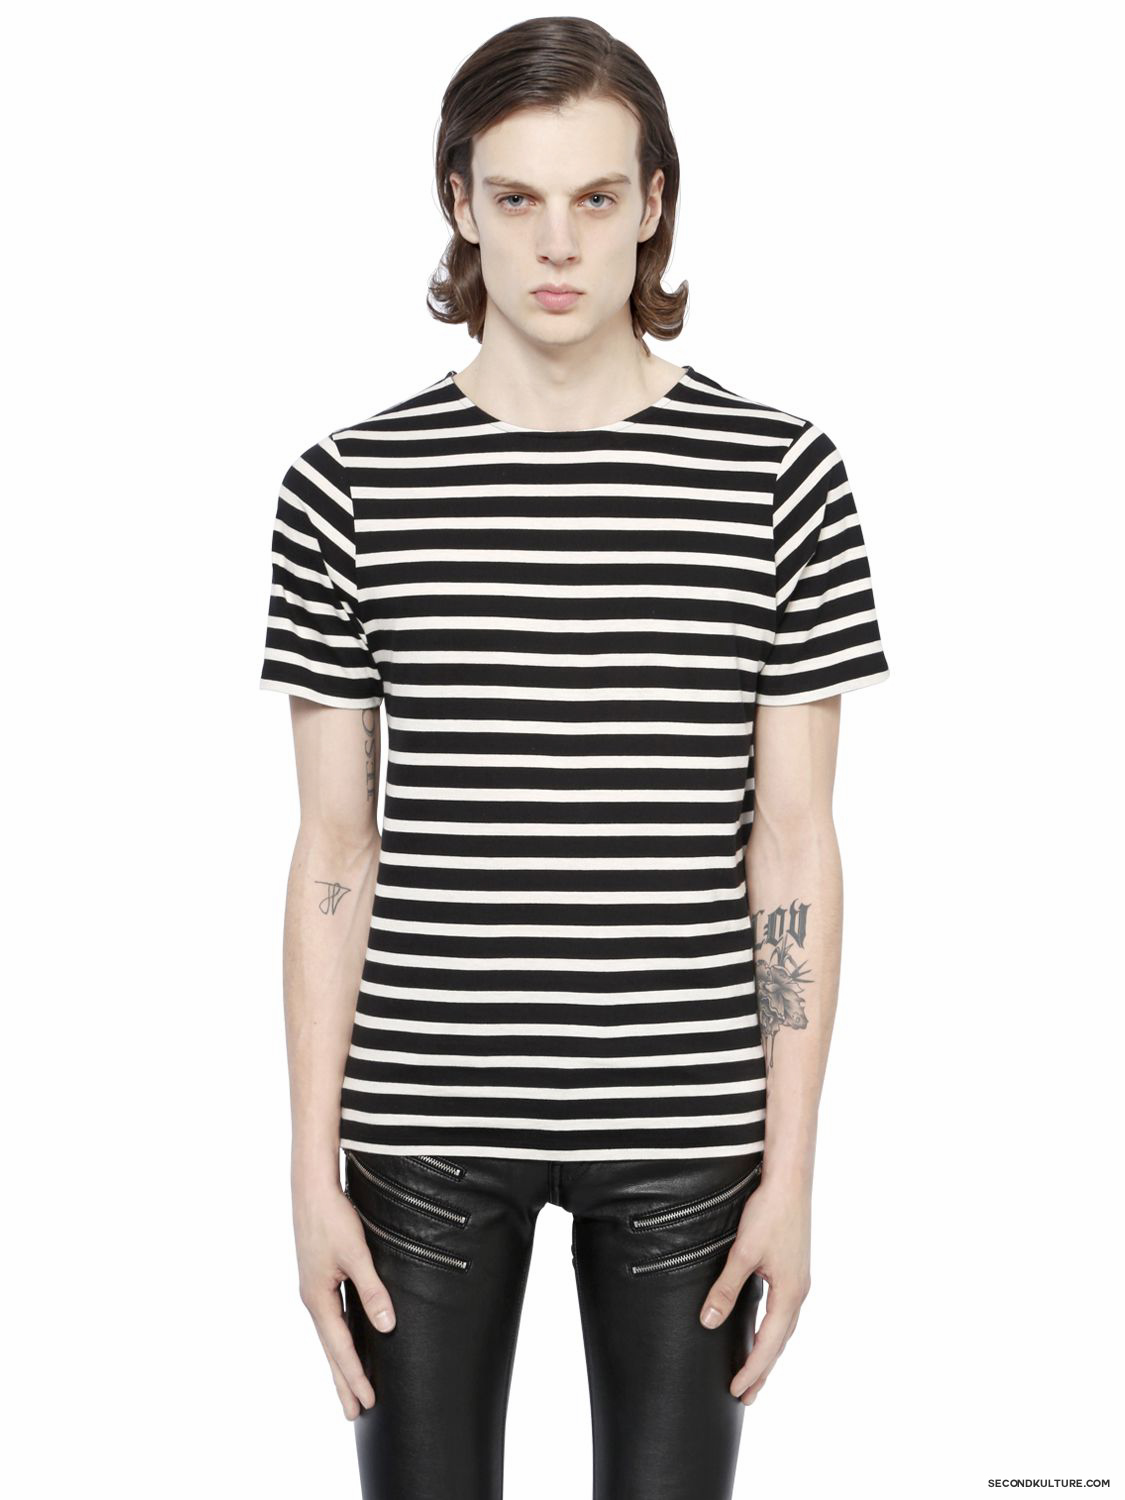 Saint-Laurent-Black-and-White-Striped-Print-T-Shirt-Fall-Winter-2015-1